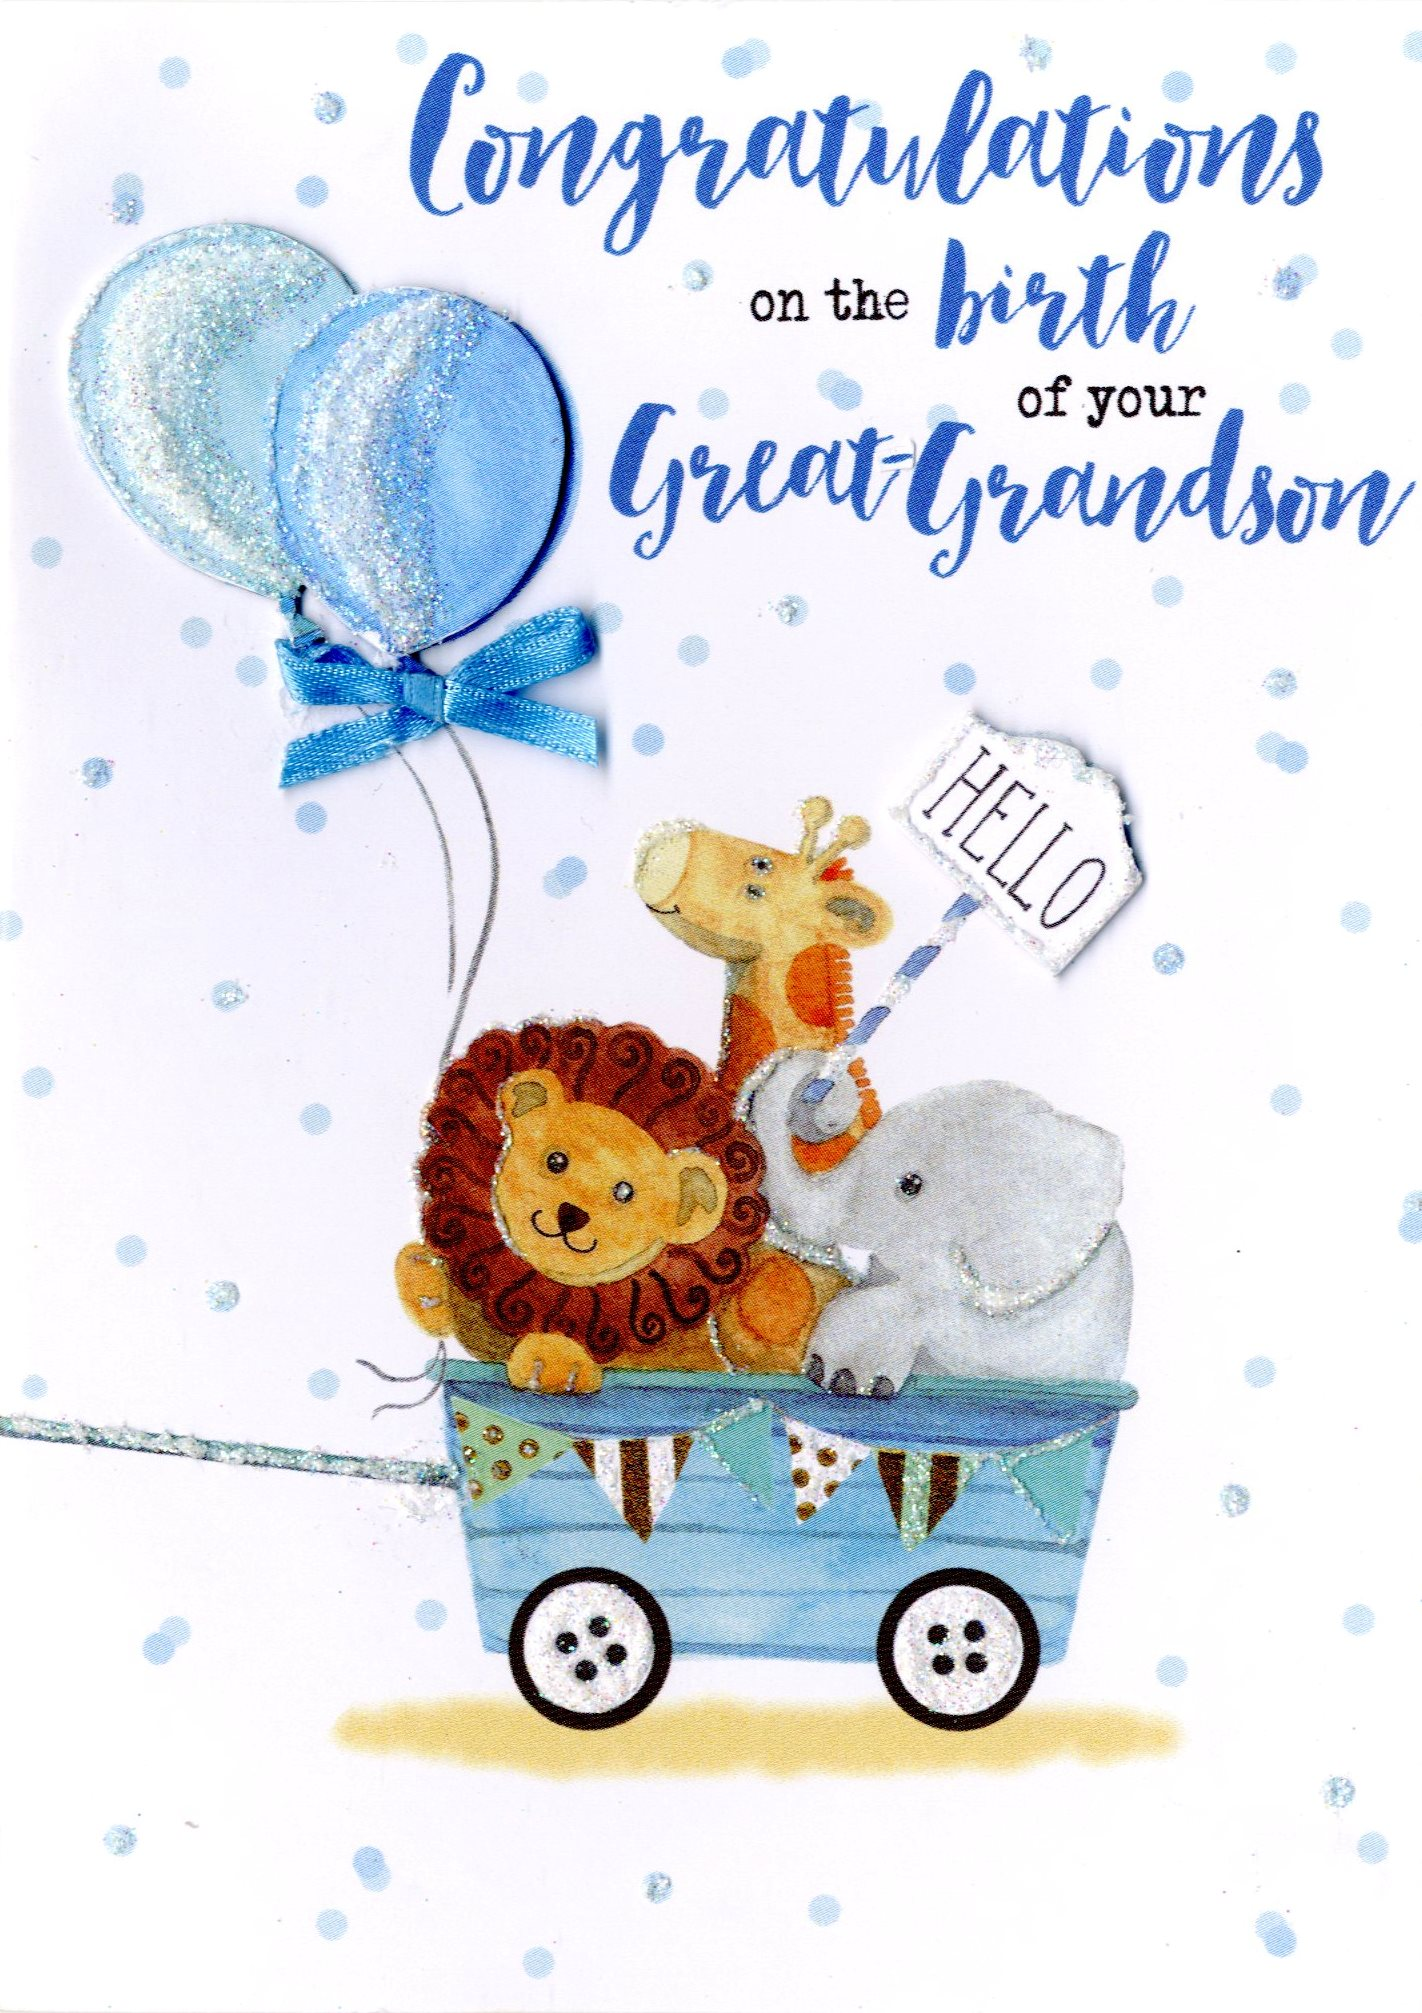 On Becoming Interesting On Apollo And The Sun: New Baby Great-Grandson Greeting Card